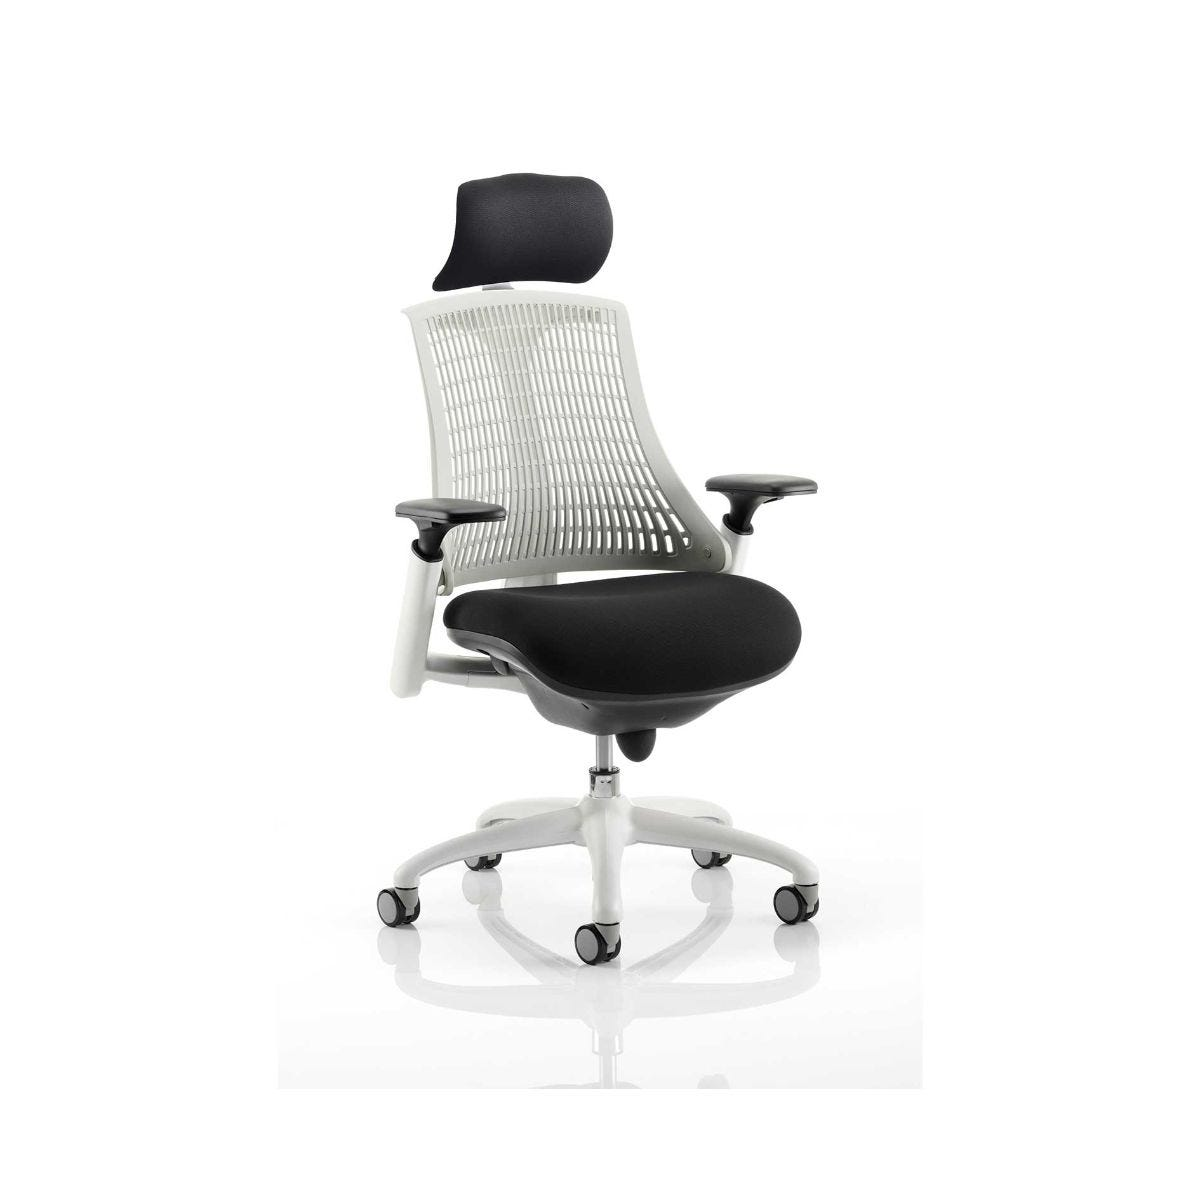 Flex Task Office Chair White Frame With Headrest, Moonstone